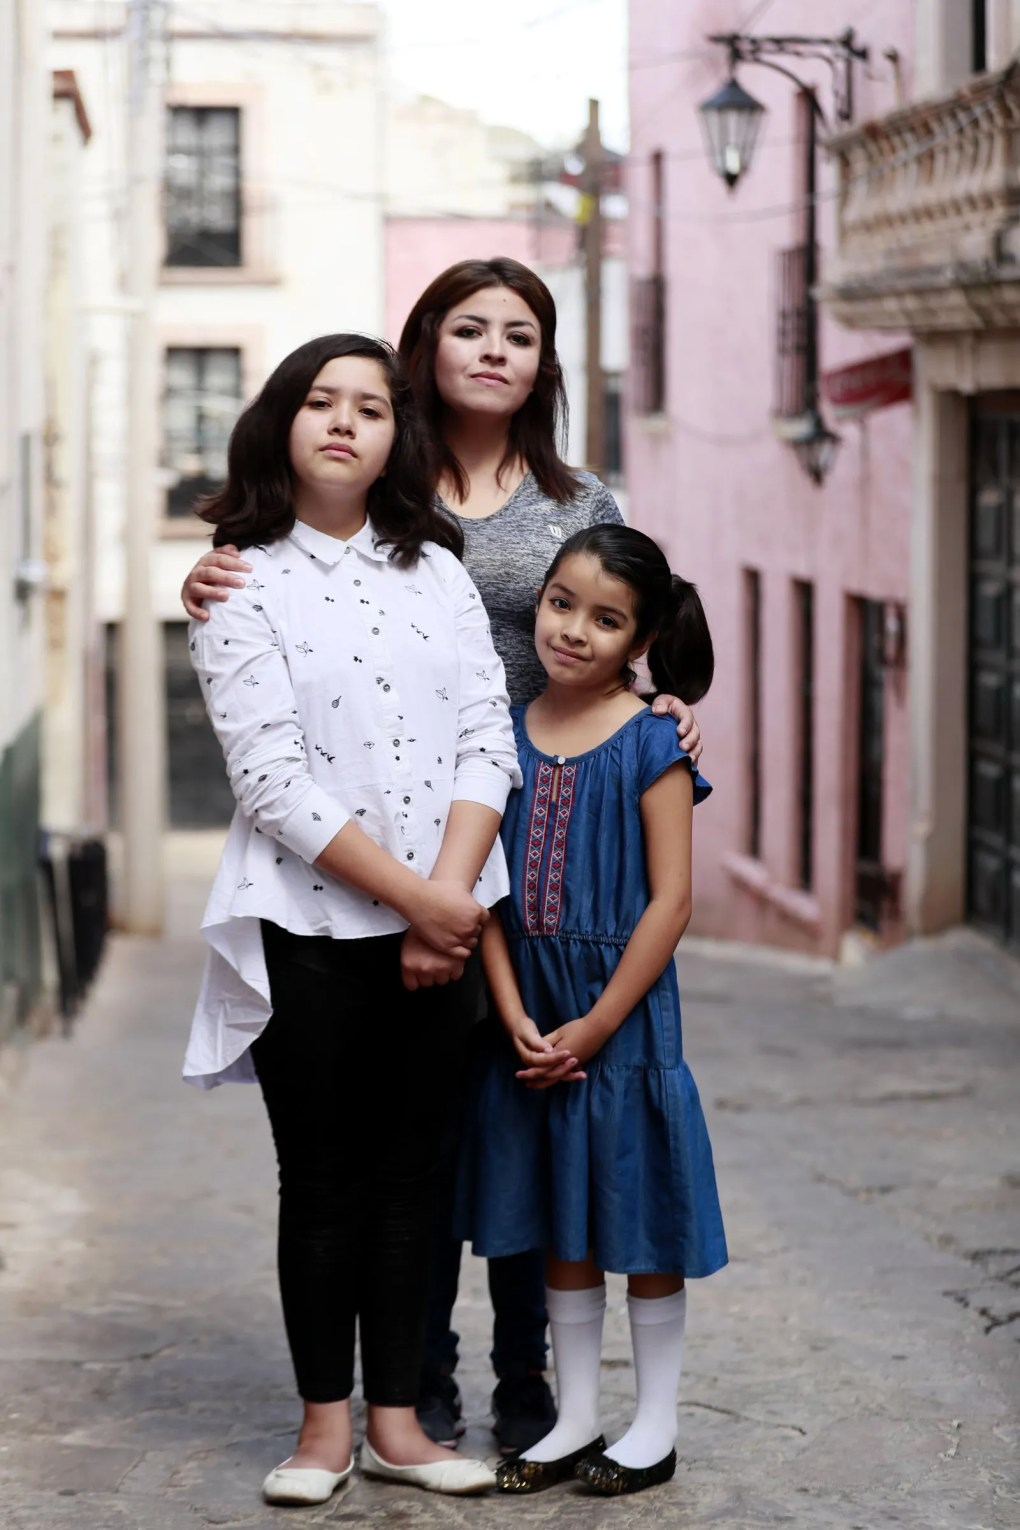 Evelyn Leyva Gómez says she found no help for her daughters Tori, 11, and Ellie, 9, as they tried to keep up in school after moving from the U.S. (Erika Schultz / The Seattle Times)